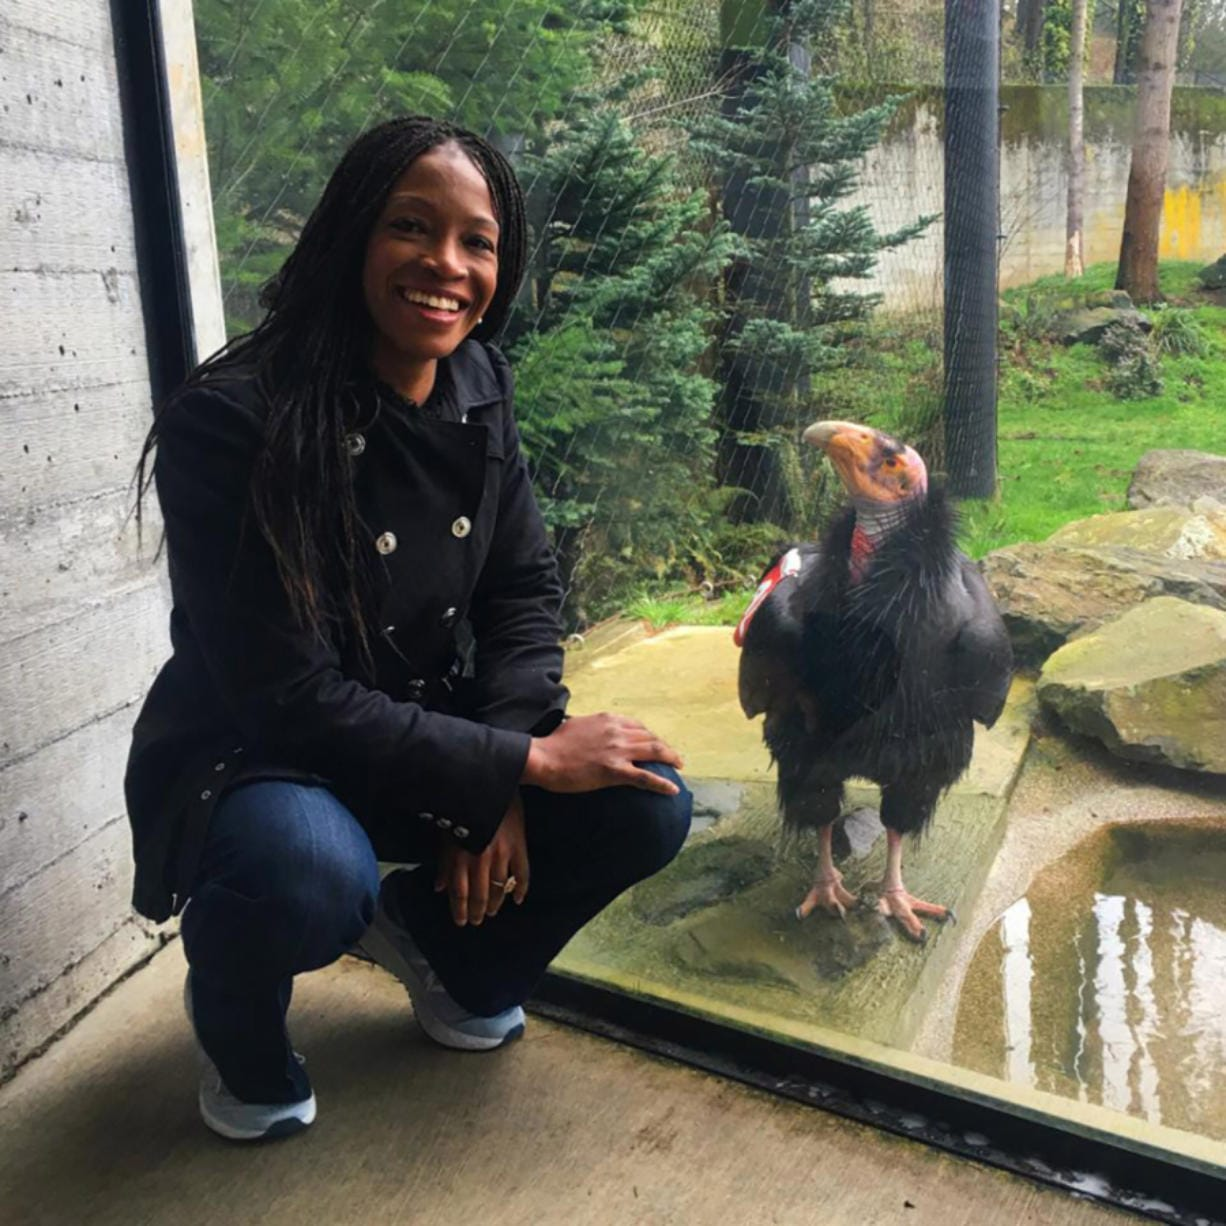 Aurelia Skipwith, the new director of the U.S. Fish and Wildife Service, poses with a friend. Skipwith sat down recently with The Columbian for an interview at the Northwest Sportsmen's Show in Portland.